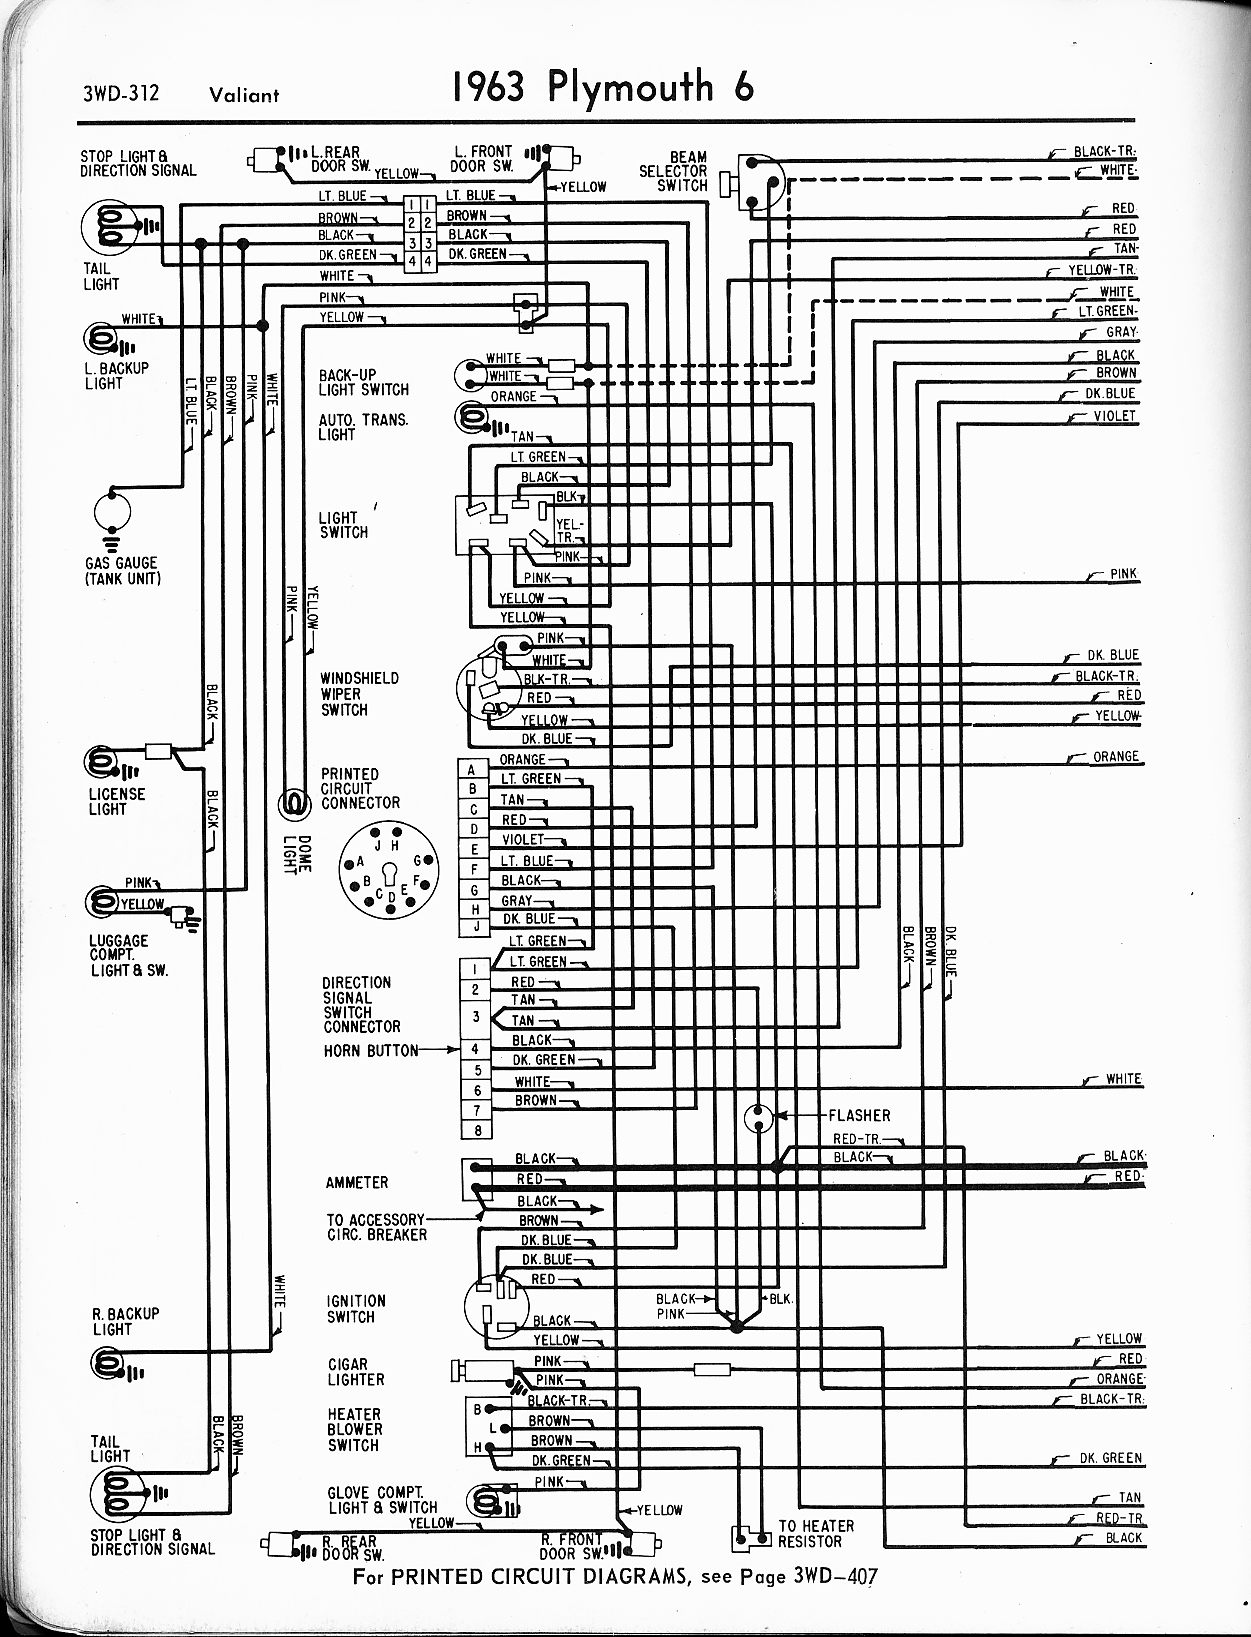 hight resolution of wiring diagrams of 1960 plymouth 6 savoy belvedere and fury wiring 1960 plymouth belvedere wiring